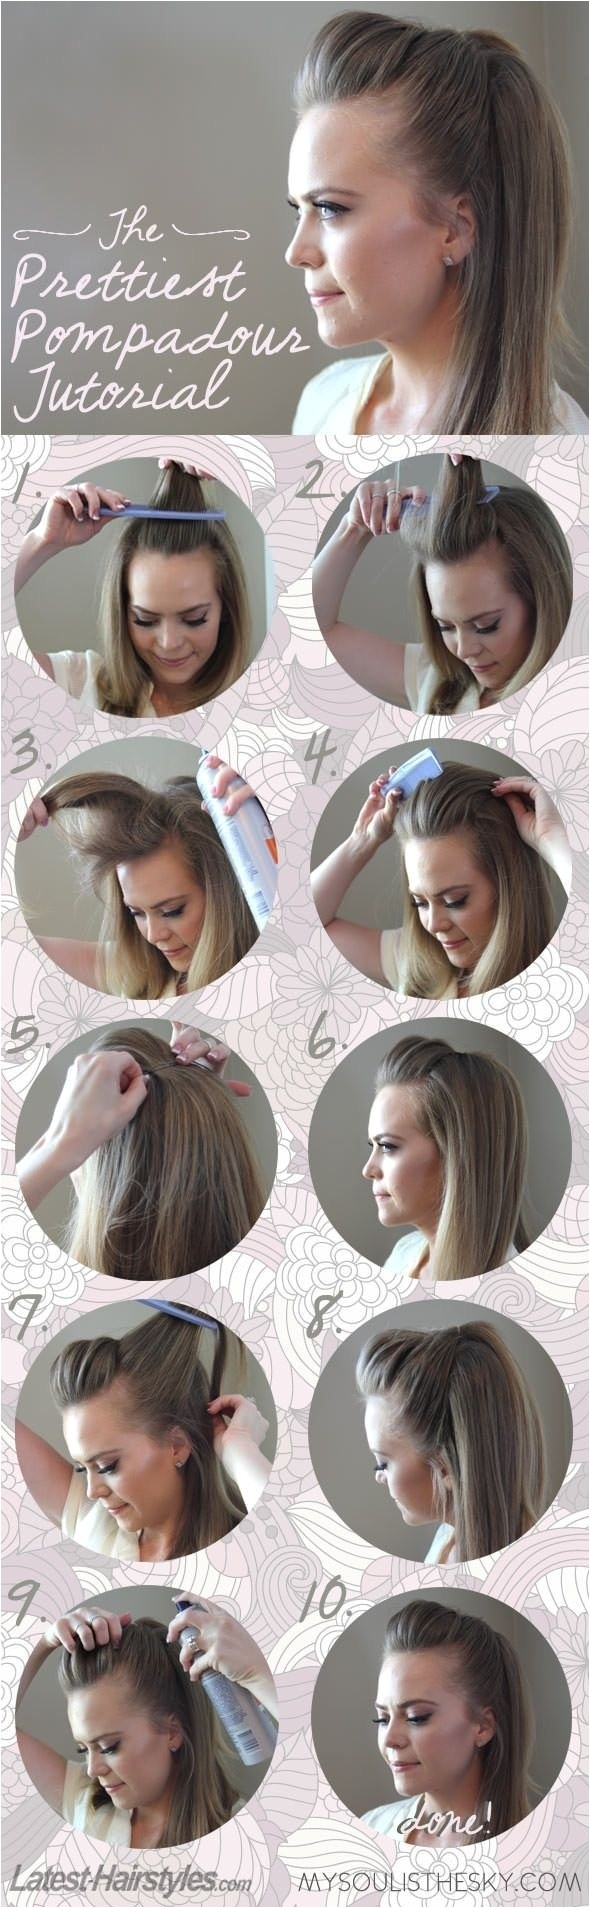 five minute hairstyles for busy mornings